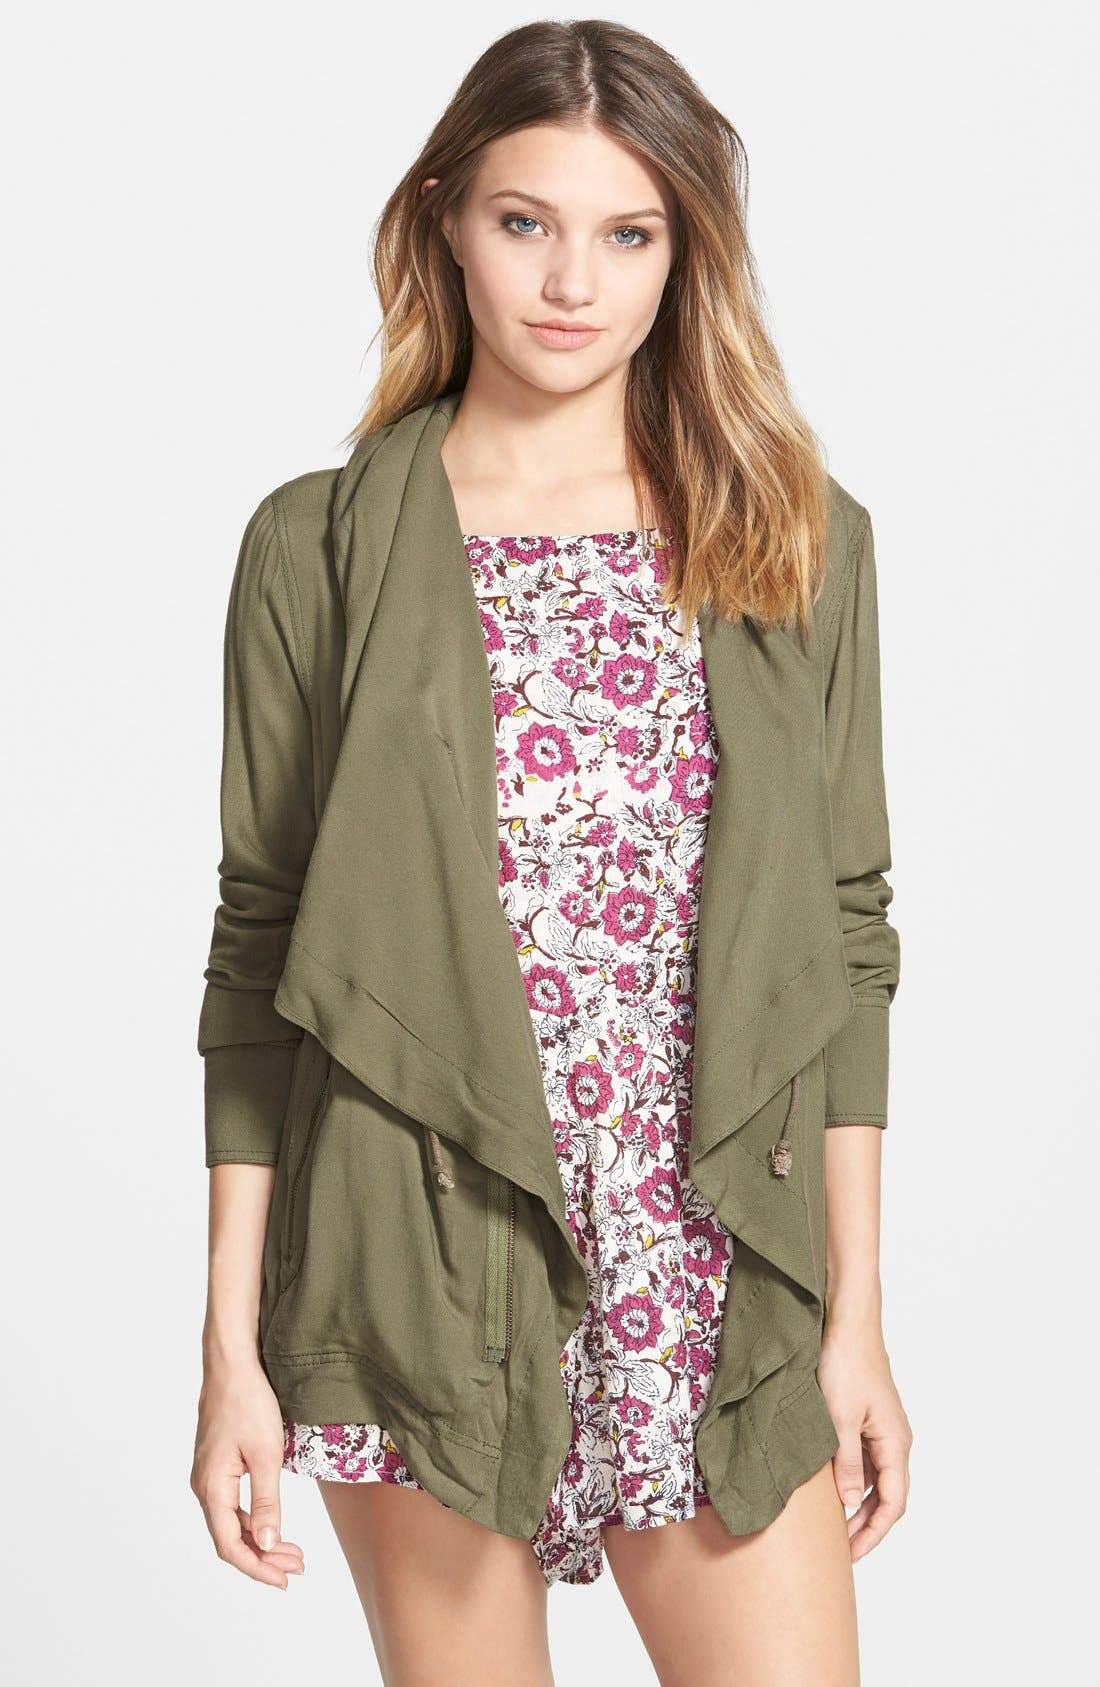 Alternate Image 1 Selected - Billabong 'On the Horizon' Drapey Jacket (Juniors)